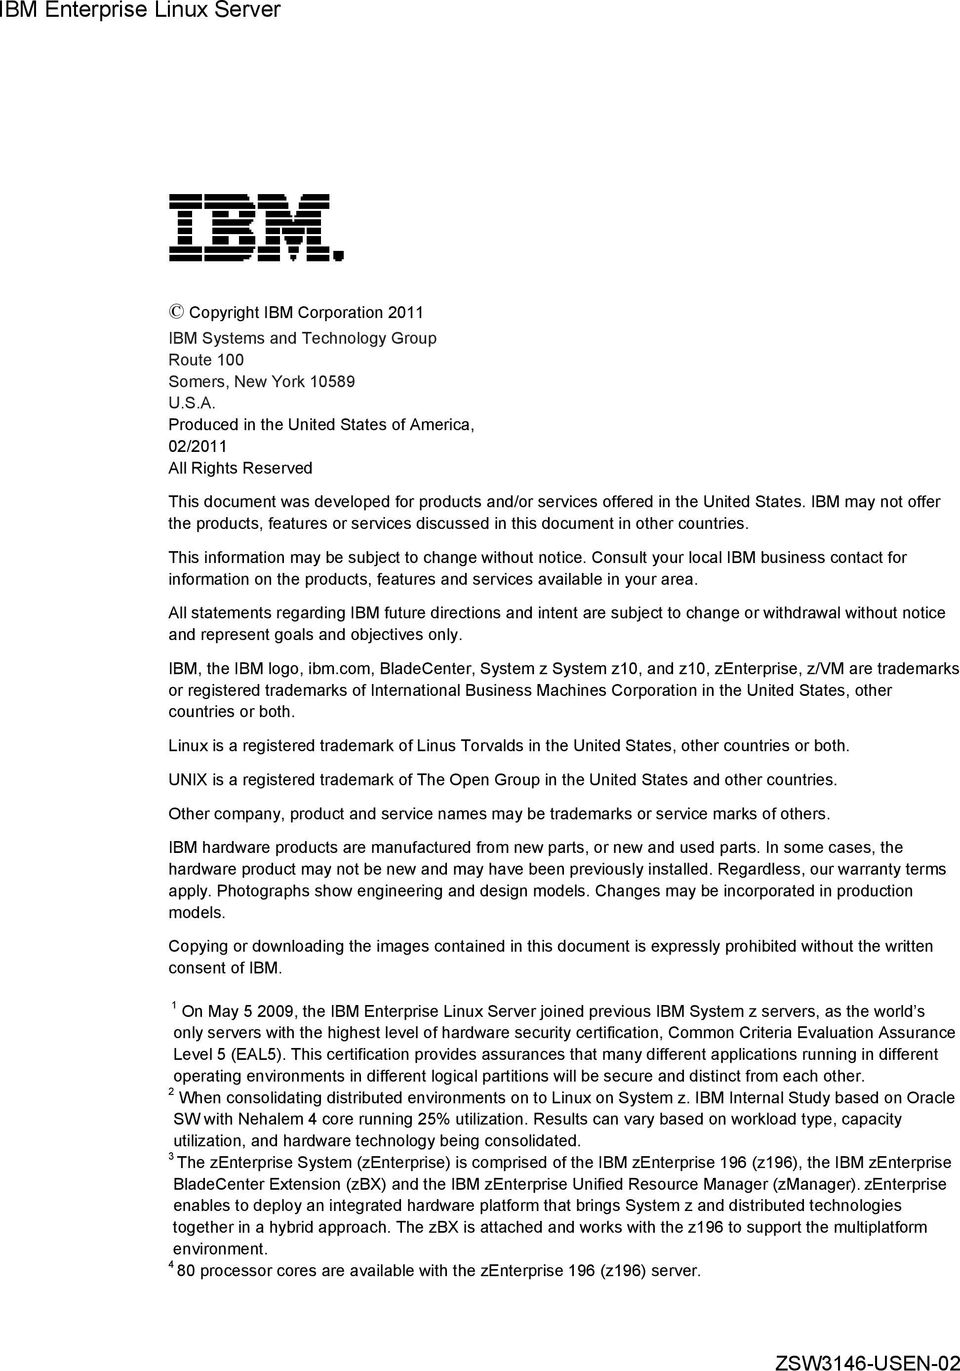 IBM may not offer the products, features or services discussed in this document in other countries. This information may be subject to change without notice.